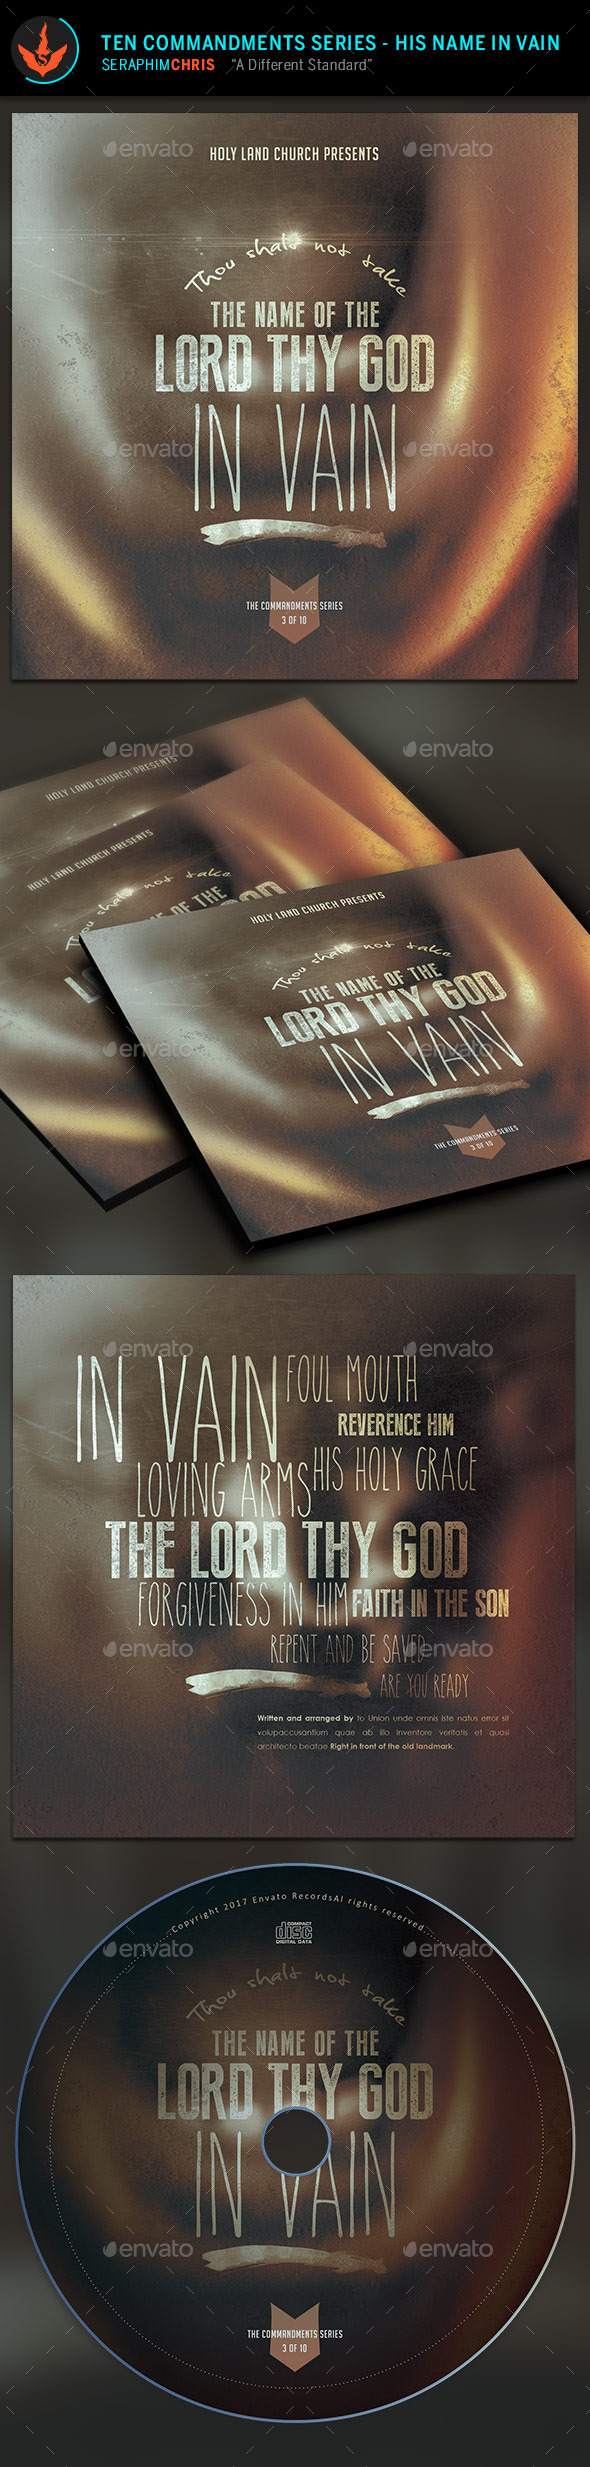 GraphicRiver The Lord's Name CD Artwork Template 9723231